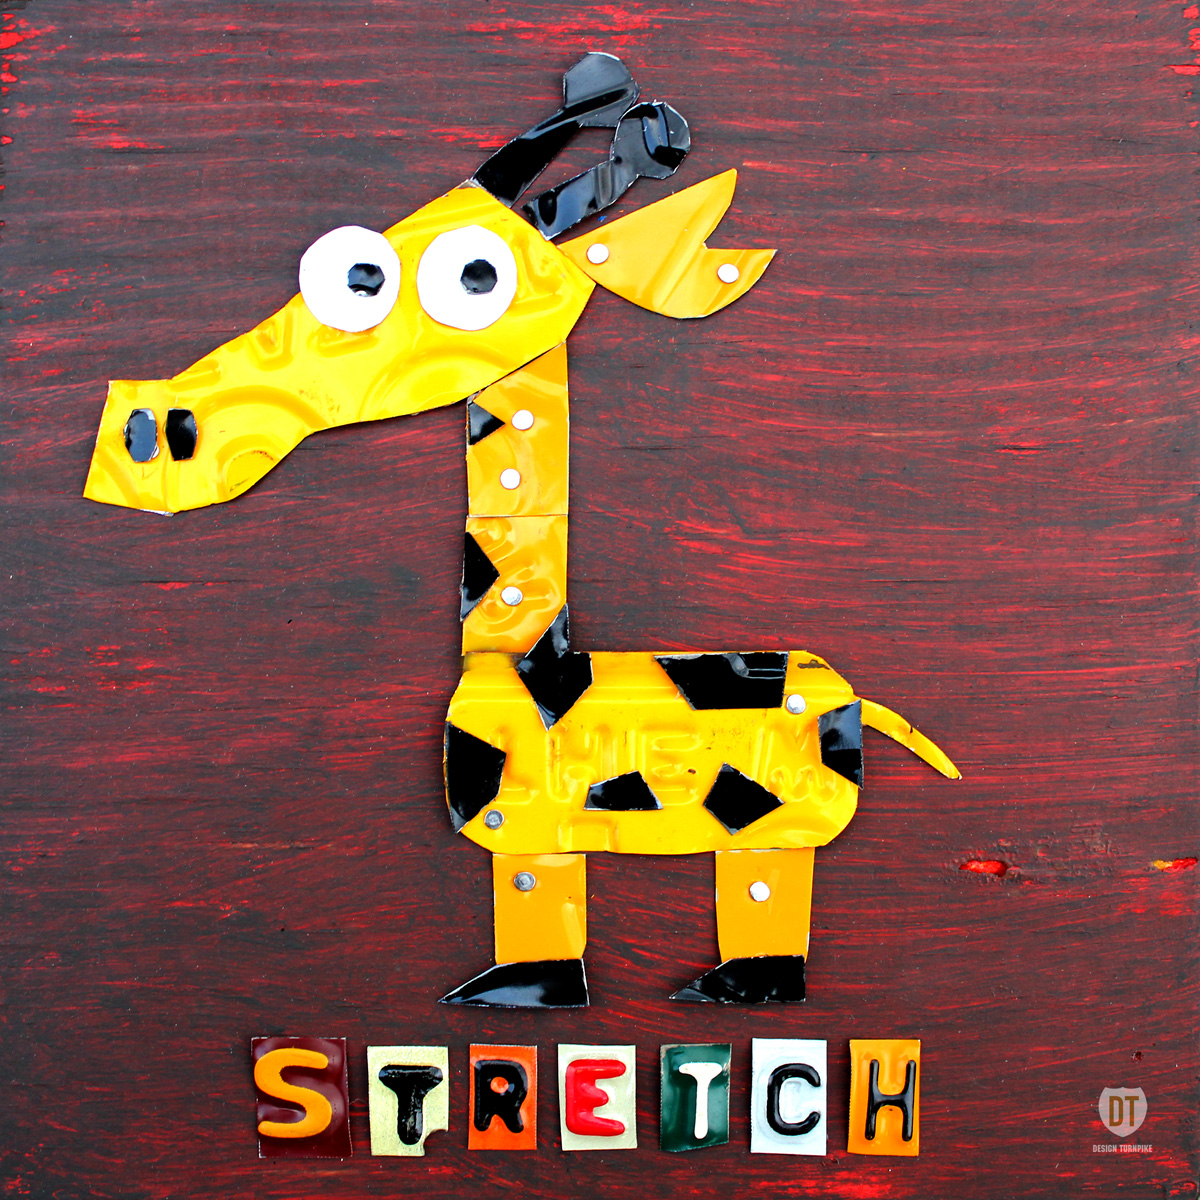 http://2.bp.blogspot.com/-nPcXvf9Uo8Q/UKucVCzaWPI/AAAAAAAADcE/Os-xaWpP-So/s1600/stretch_the_giraffe_license_plate_art_1200.jpg